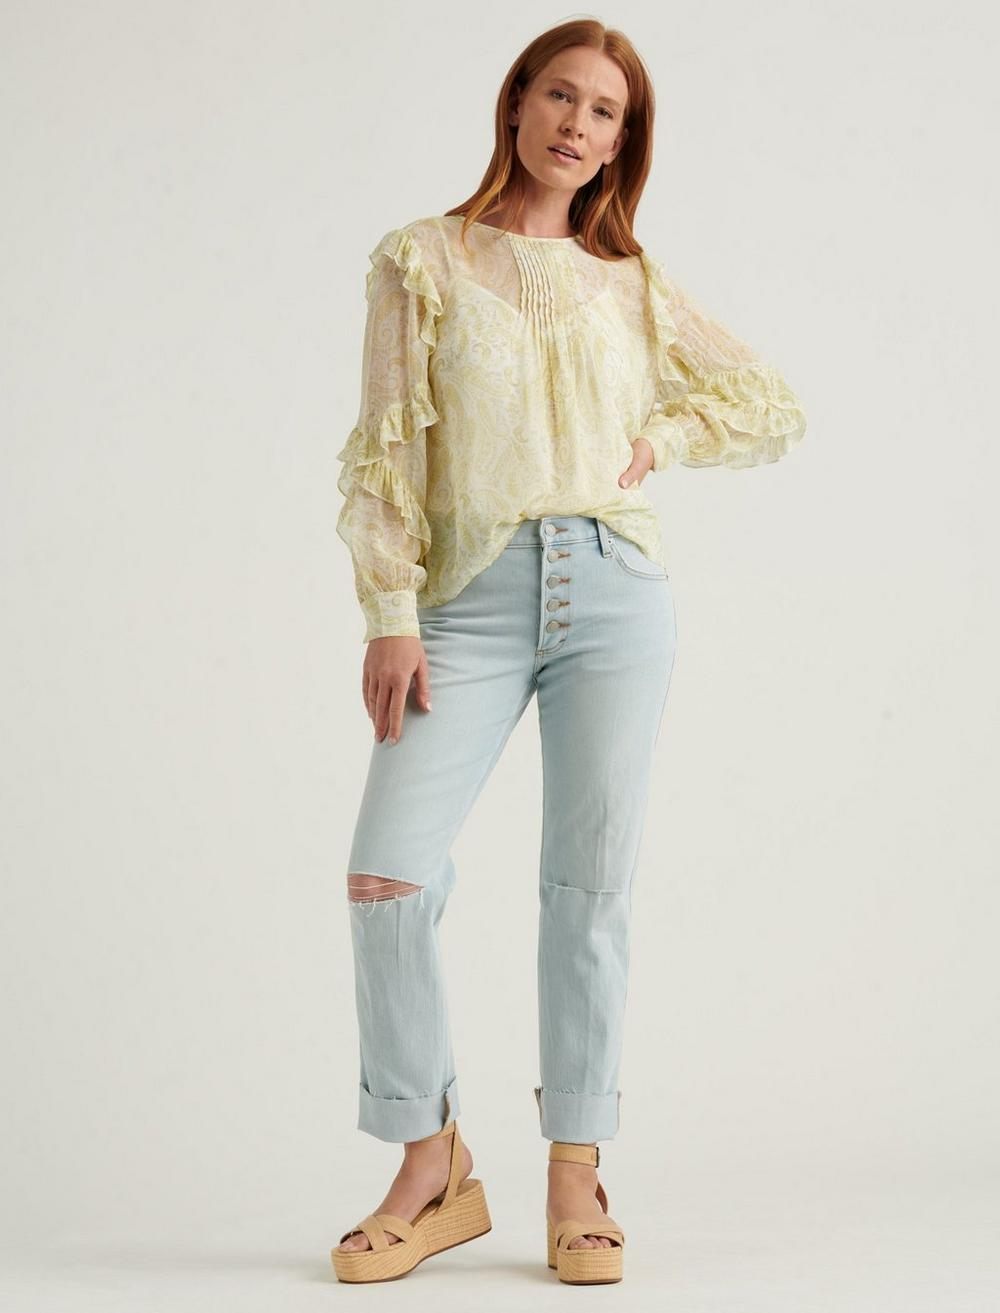 GEORGETTE RUFFLE BLOUSE TOP, image 2